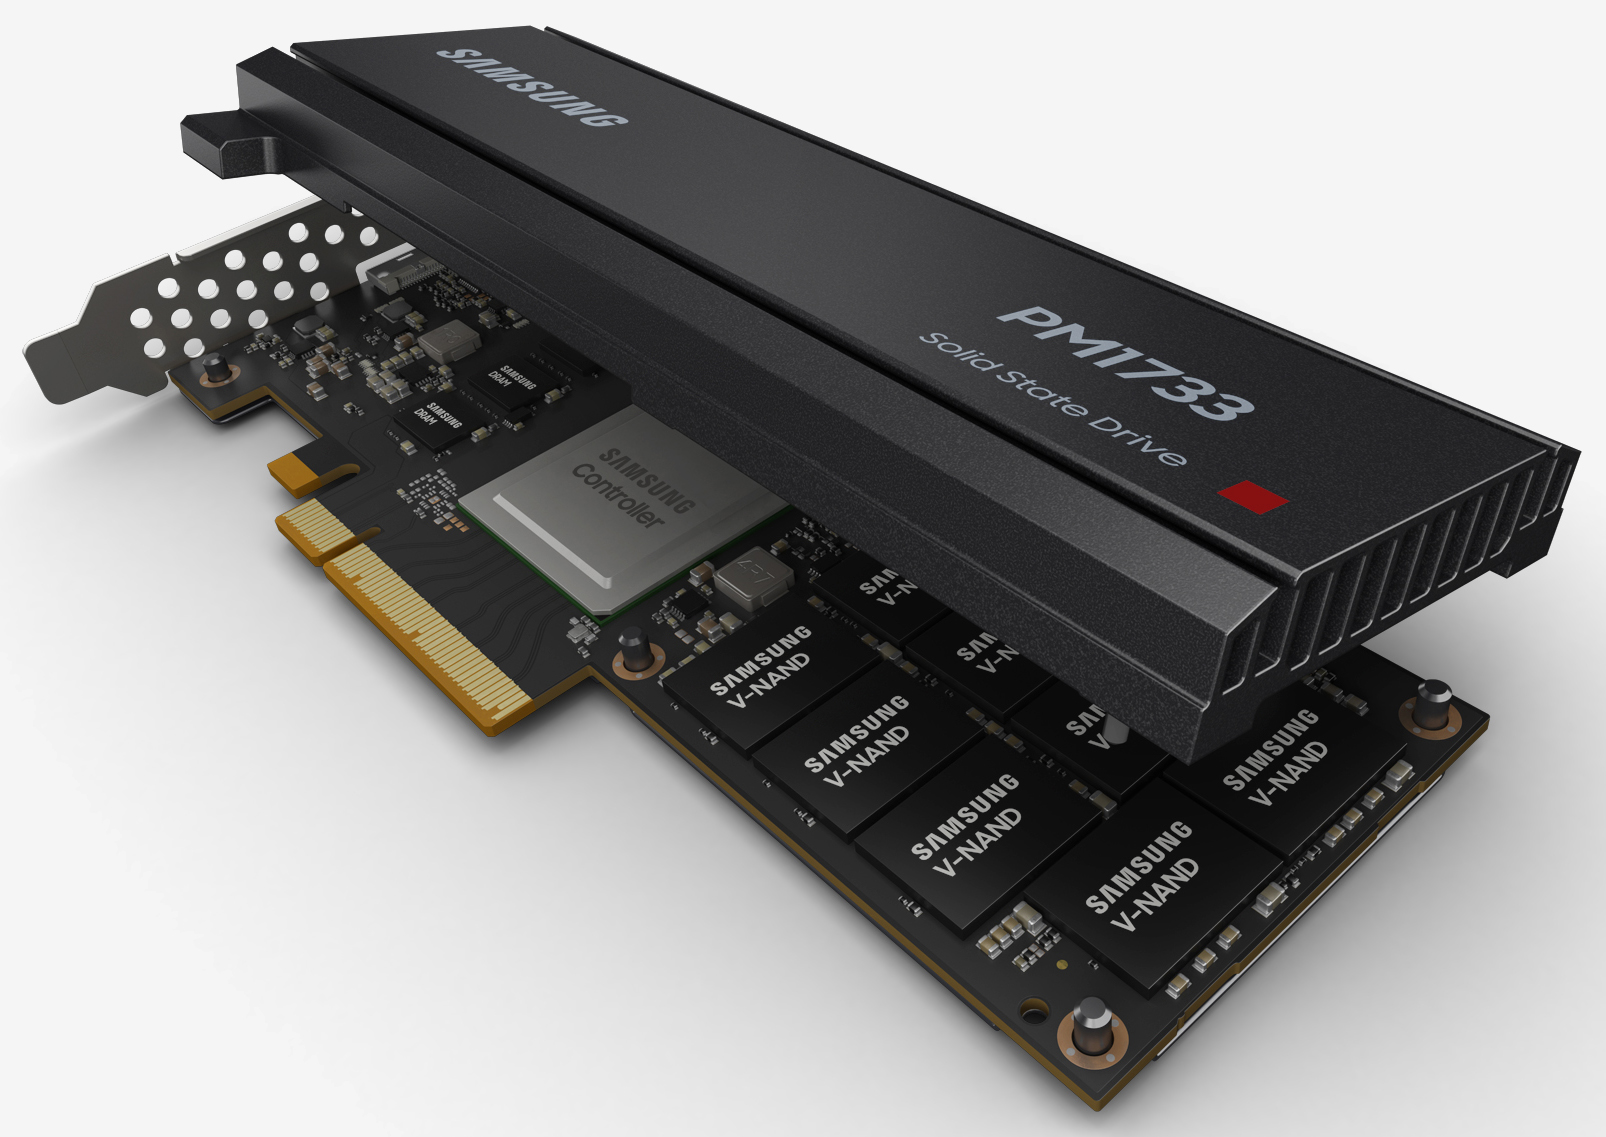 Samsung announces the PM1733 PCIe 4.0, the industry's highest performing SSD